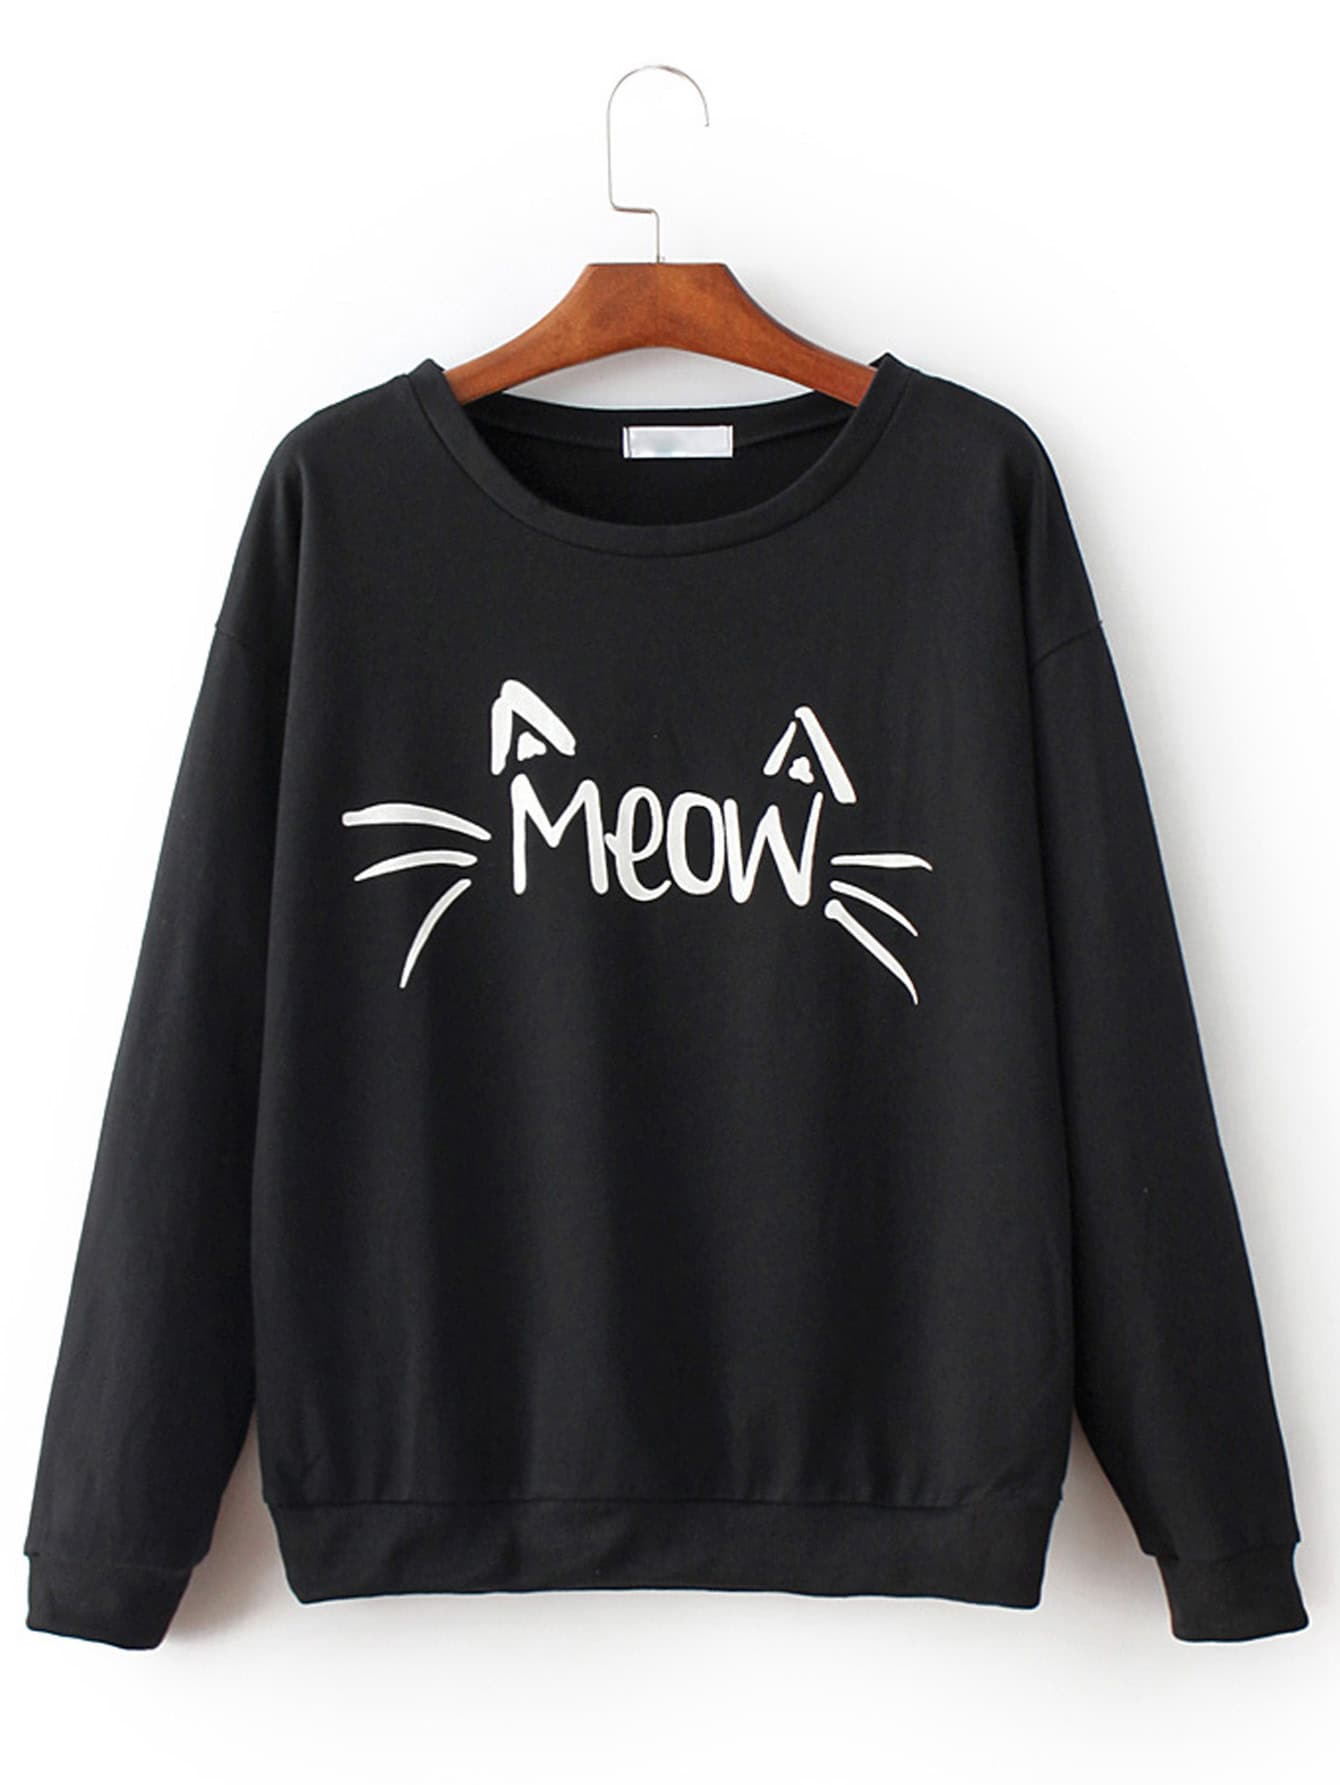 MEOW Cat Print Loose Black Sweatshirt